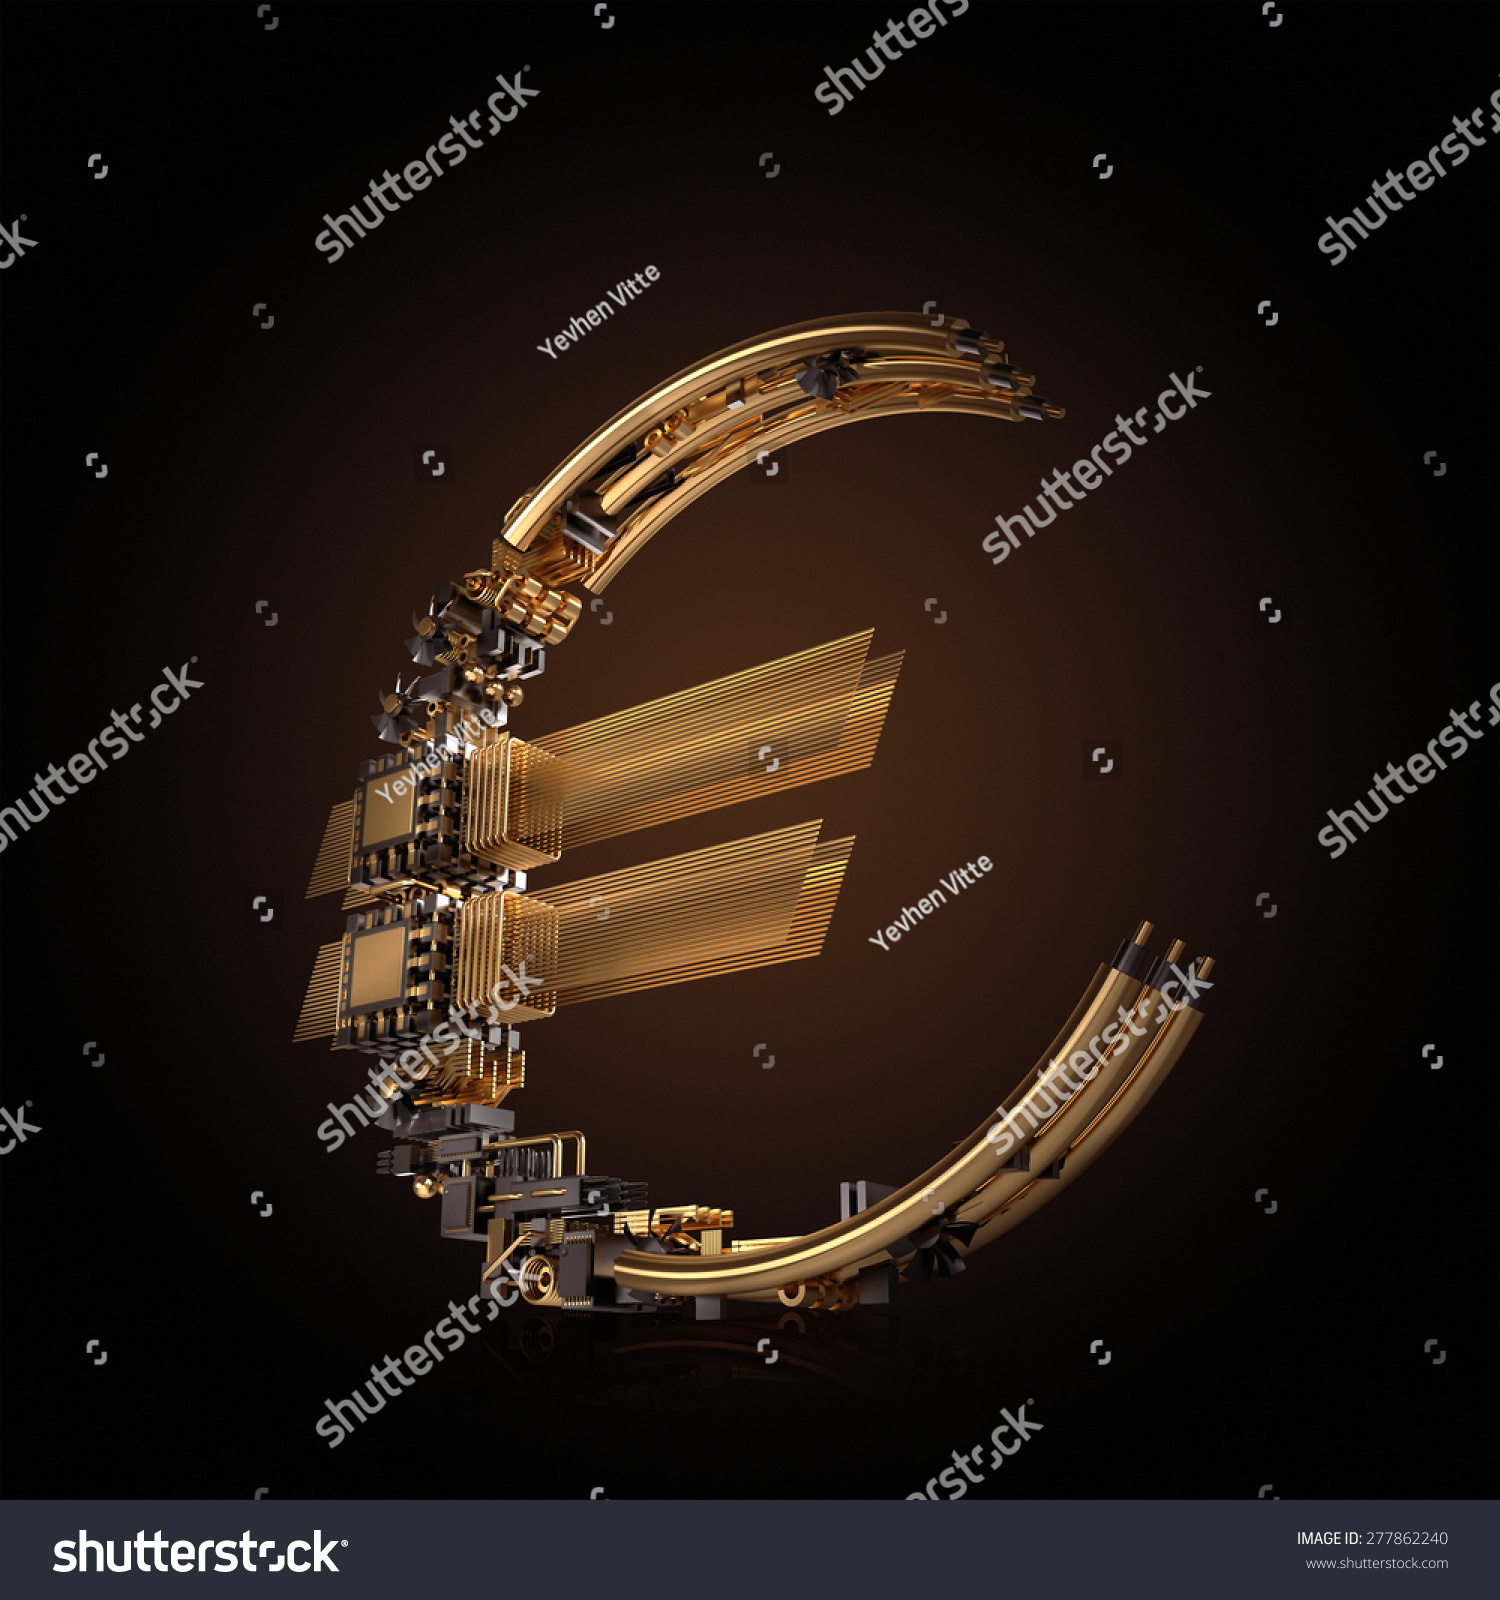 Business concept euro currency symbol microchips stock illustration euro currency symbol of microchips on black background high resolution biocorpaavc Images